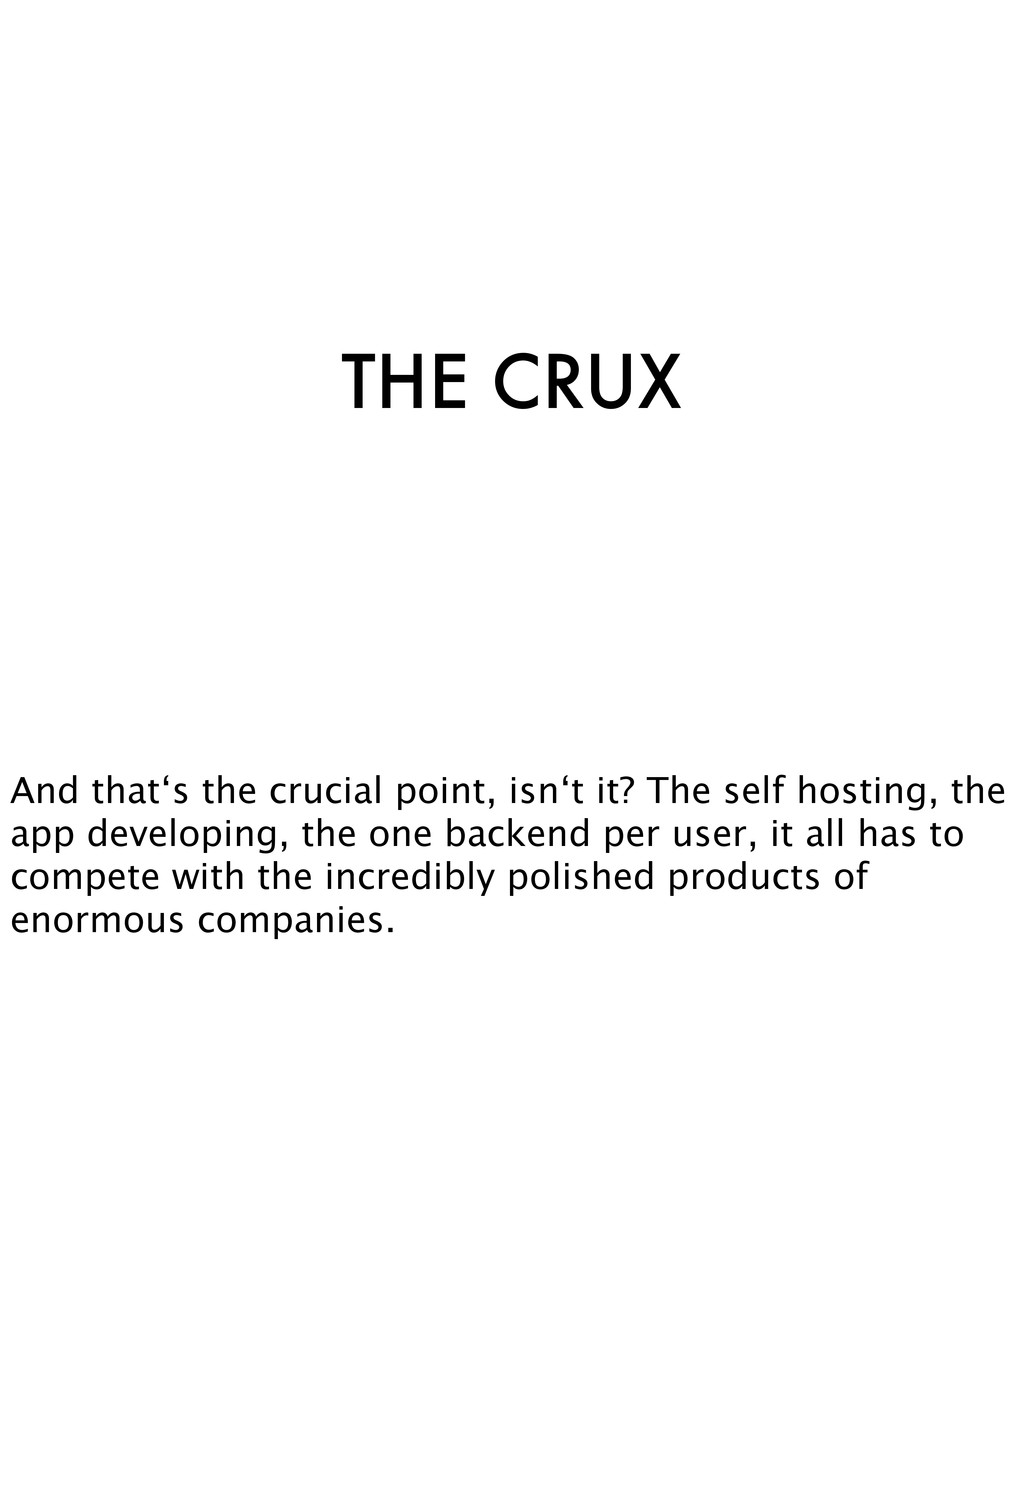 THE CRUX And that's the crucial point, isn't it...